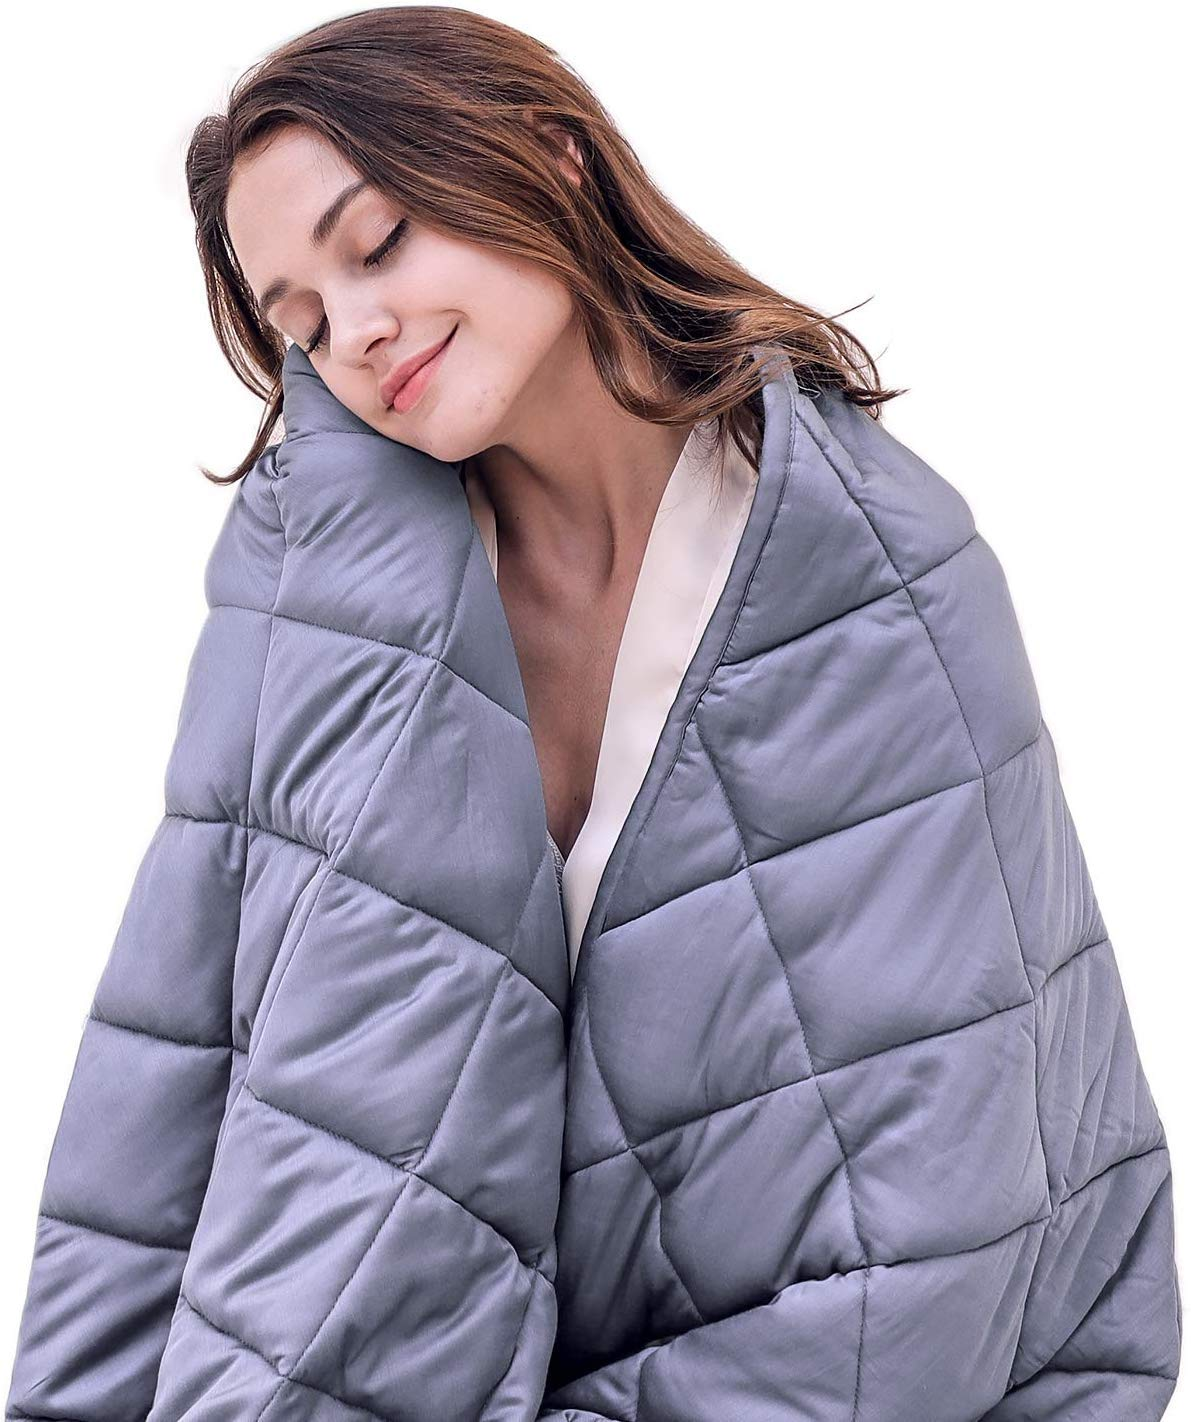 Sleeper Weighted Blanket Upgrade Non Toxic